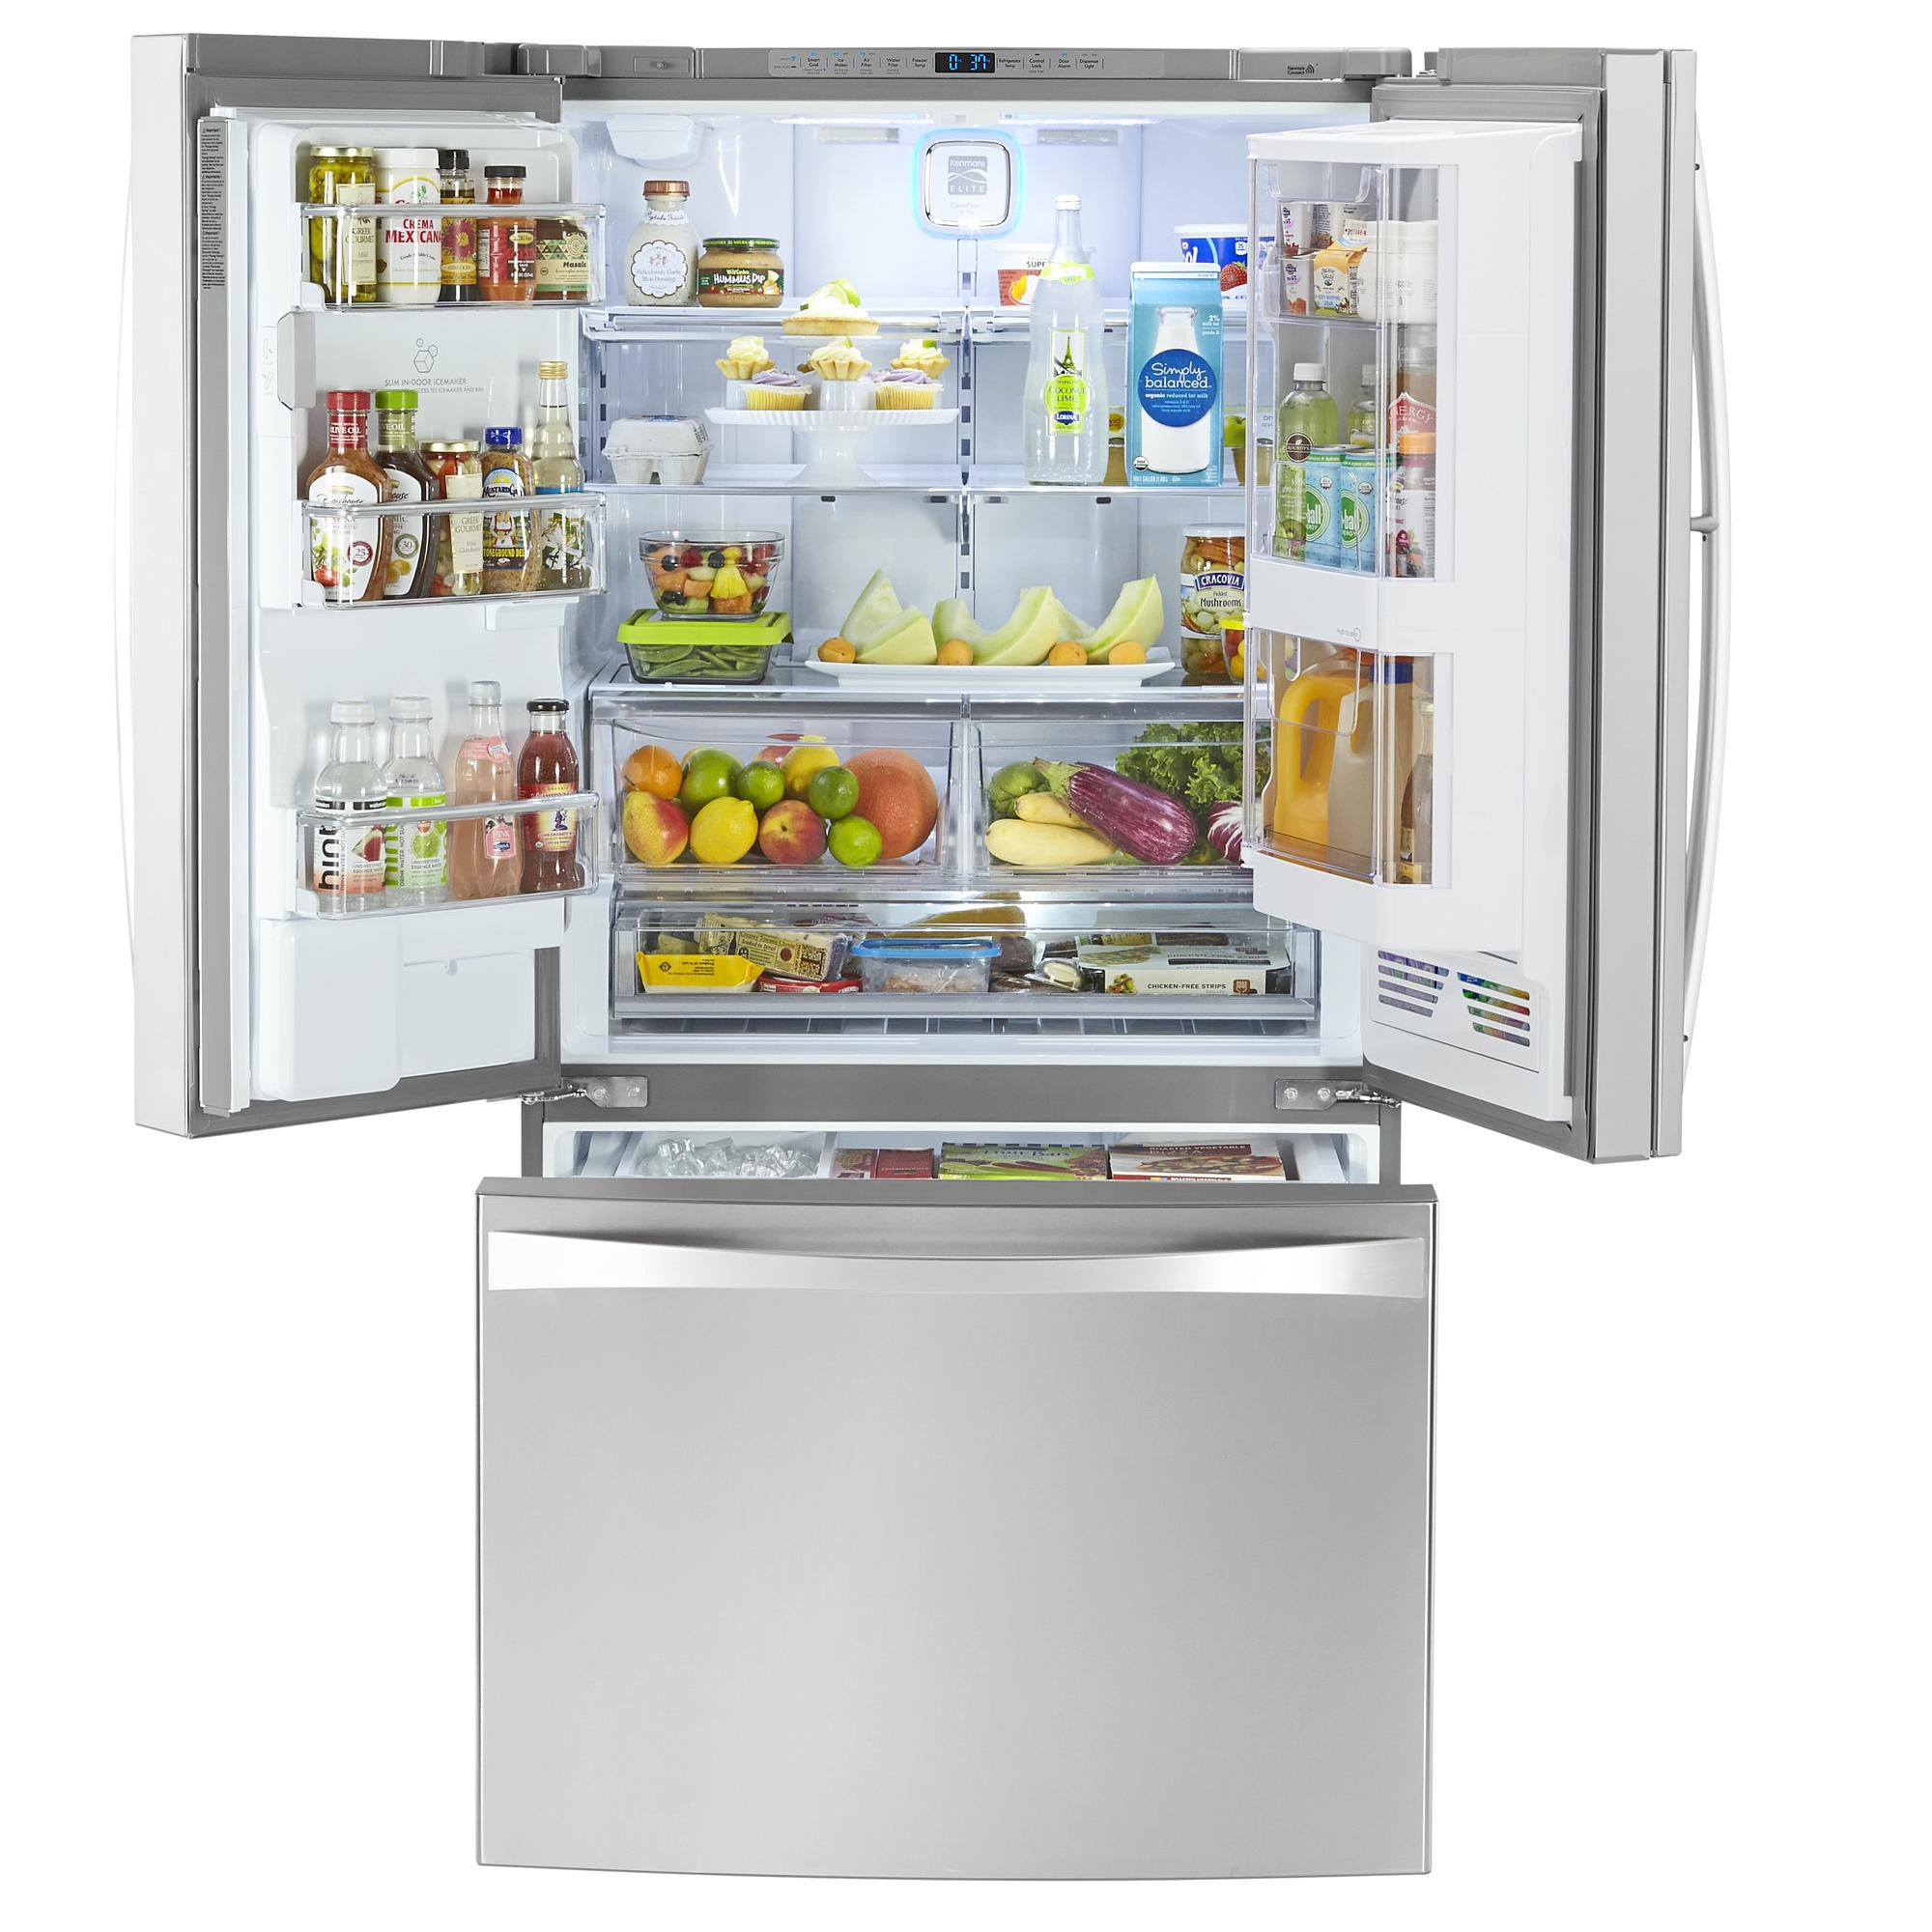 Troubleshooting a refrigerator not cooling video ... on